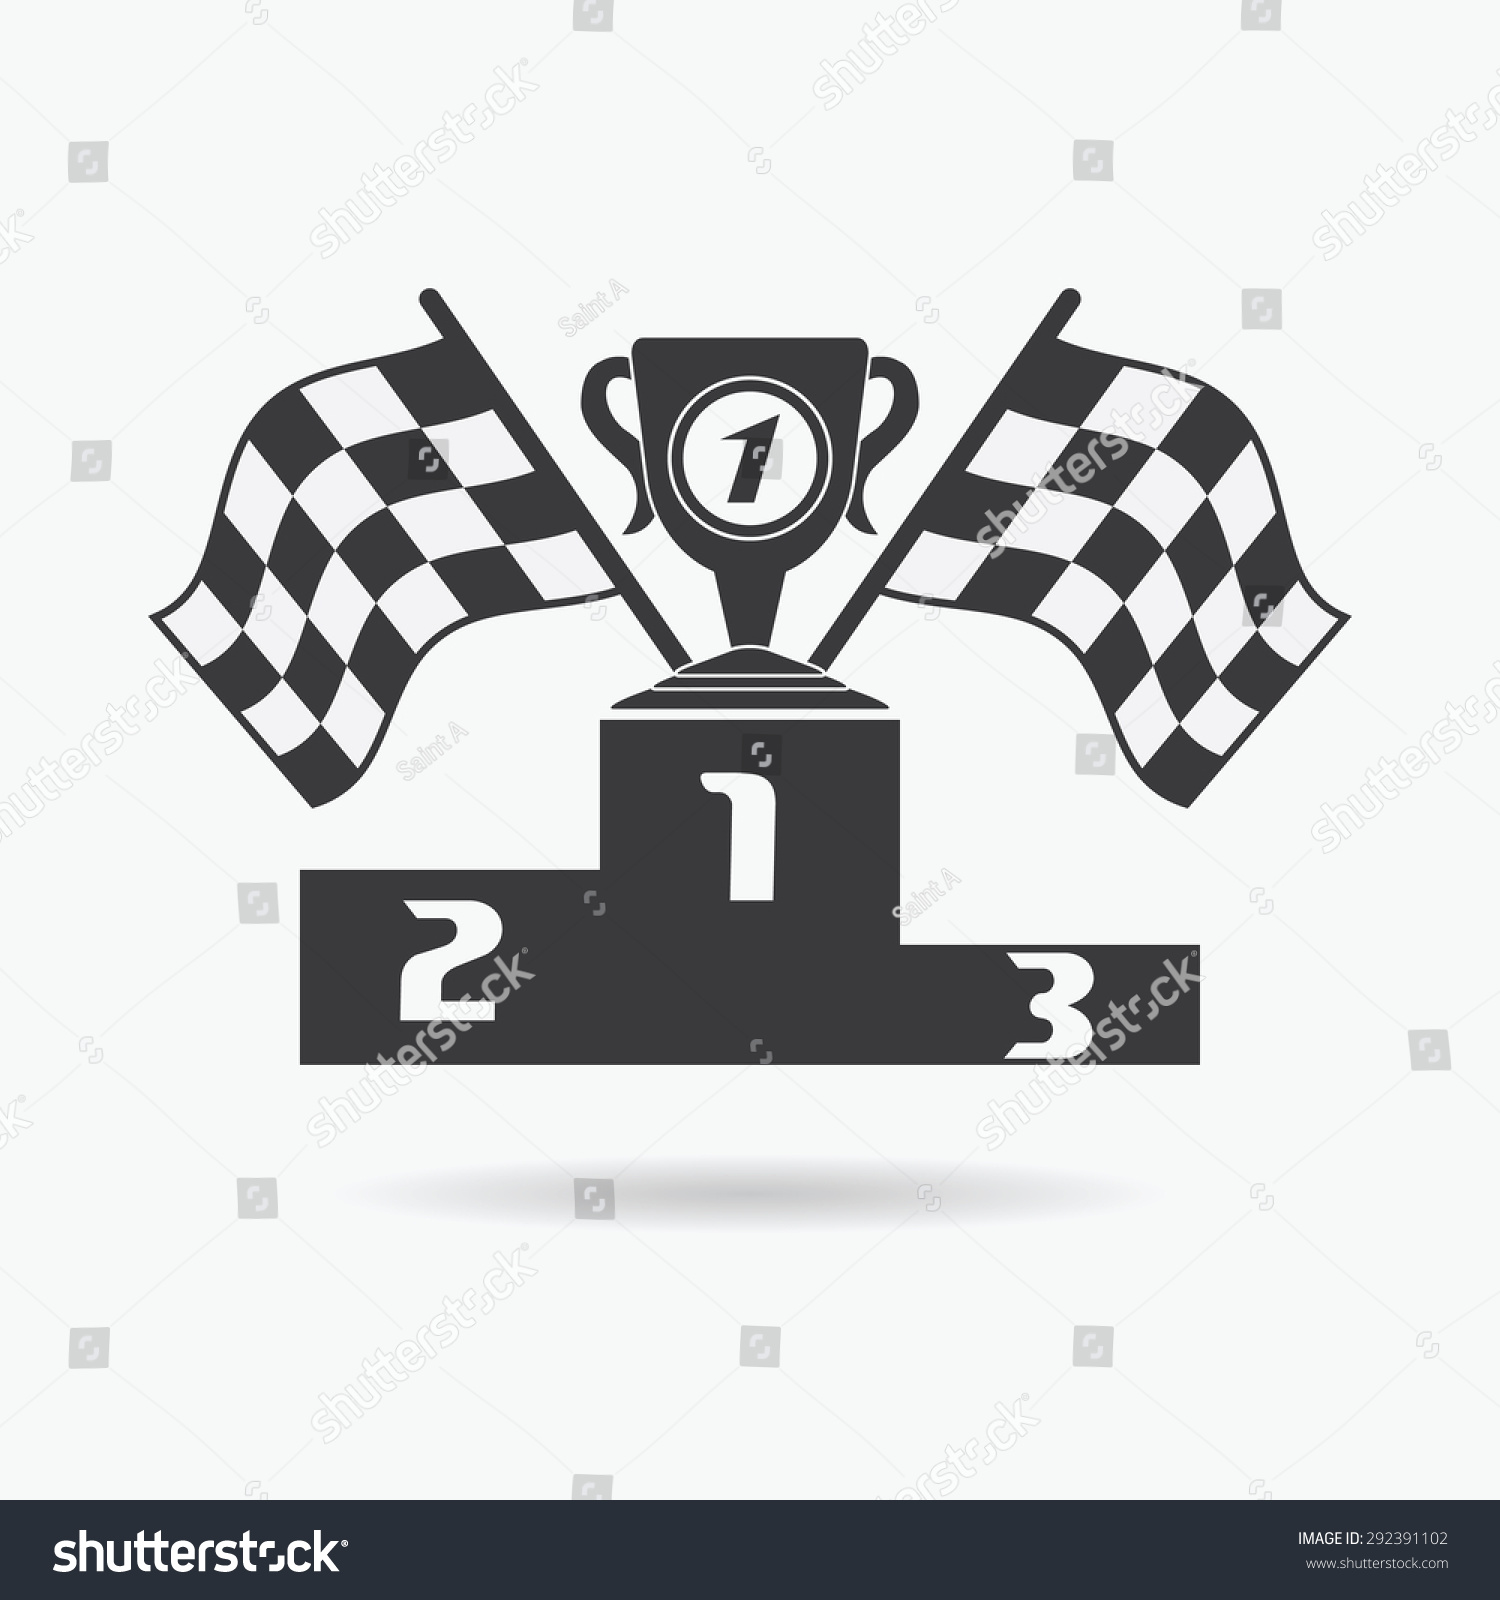 Racing Checkered Flag >> Flag Icon. Checkered Or Racing Flags First Place Prize Cup And Winners Podium. Sport Auto, Speed ...